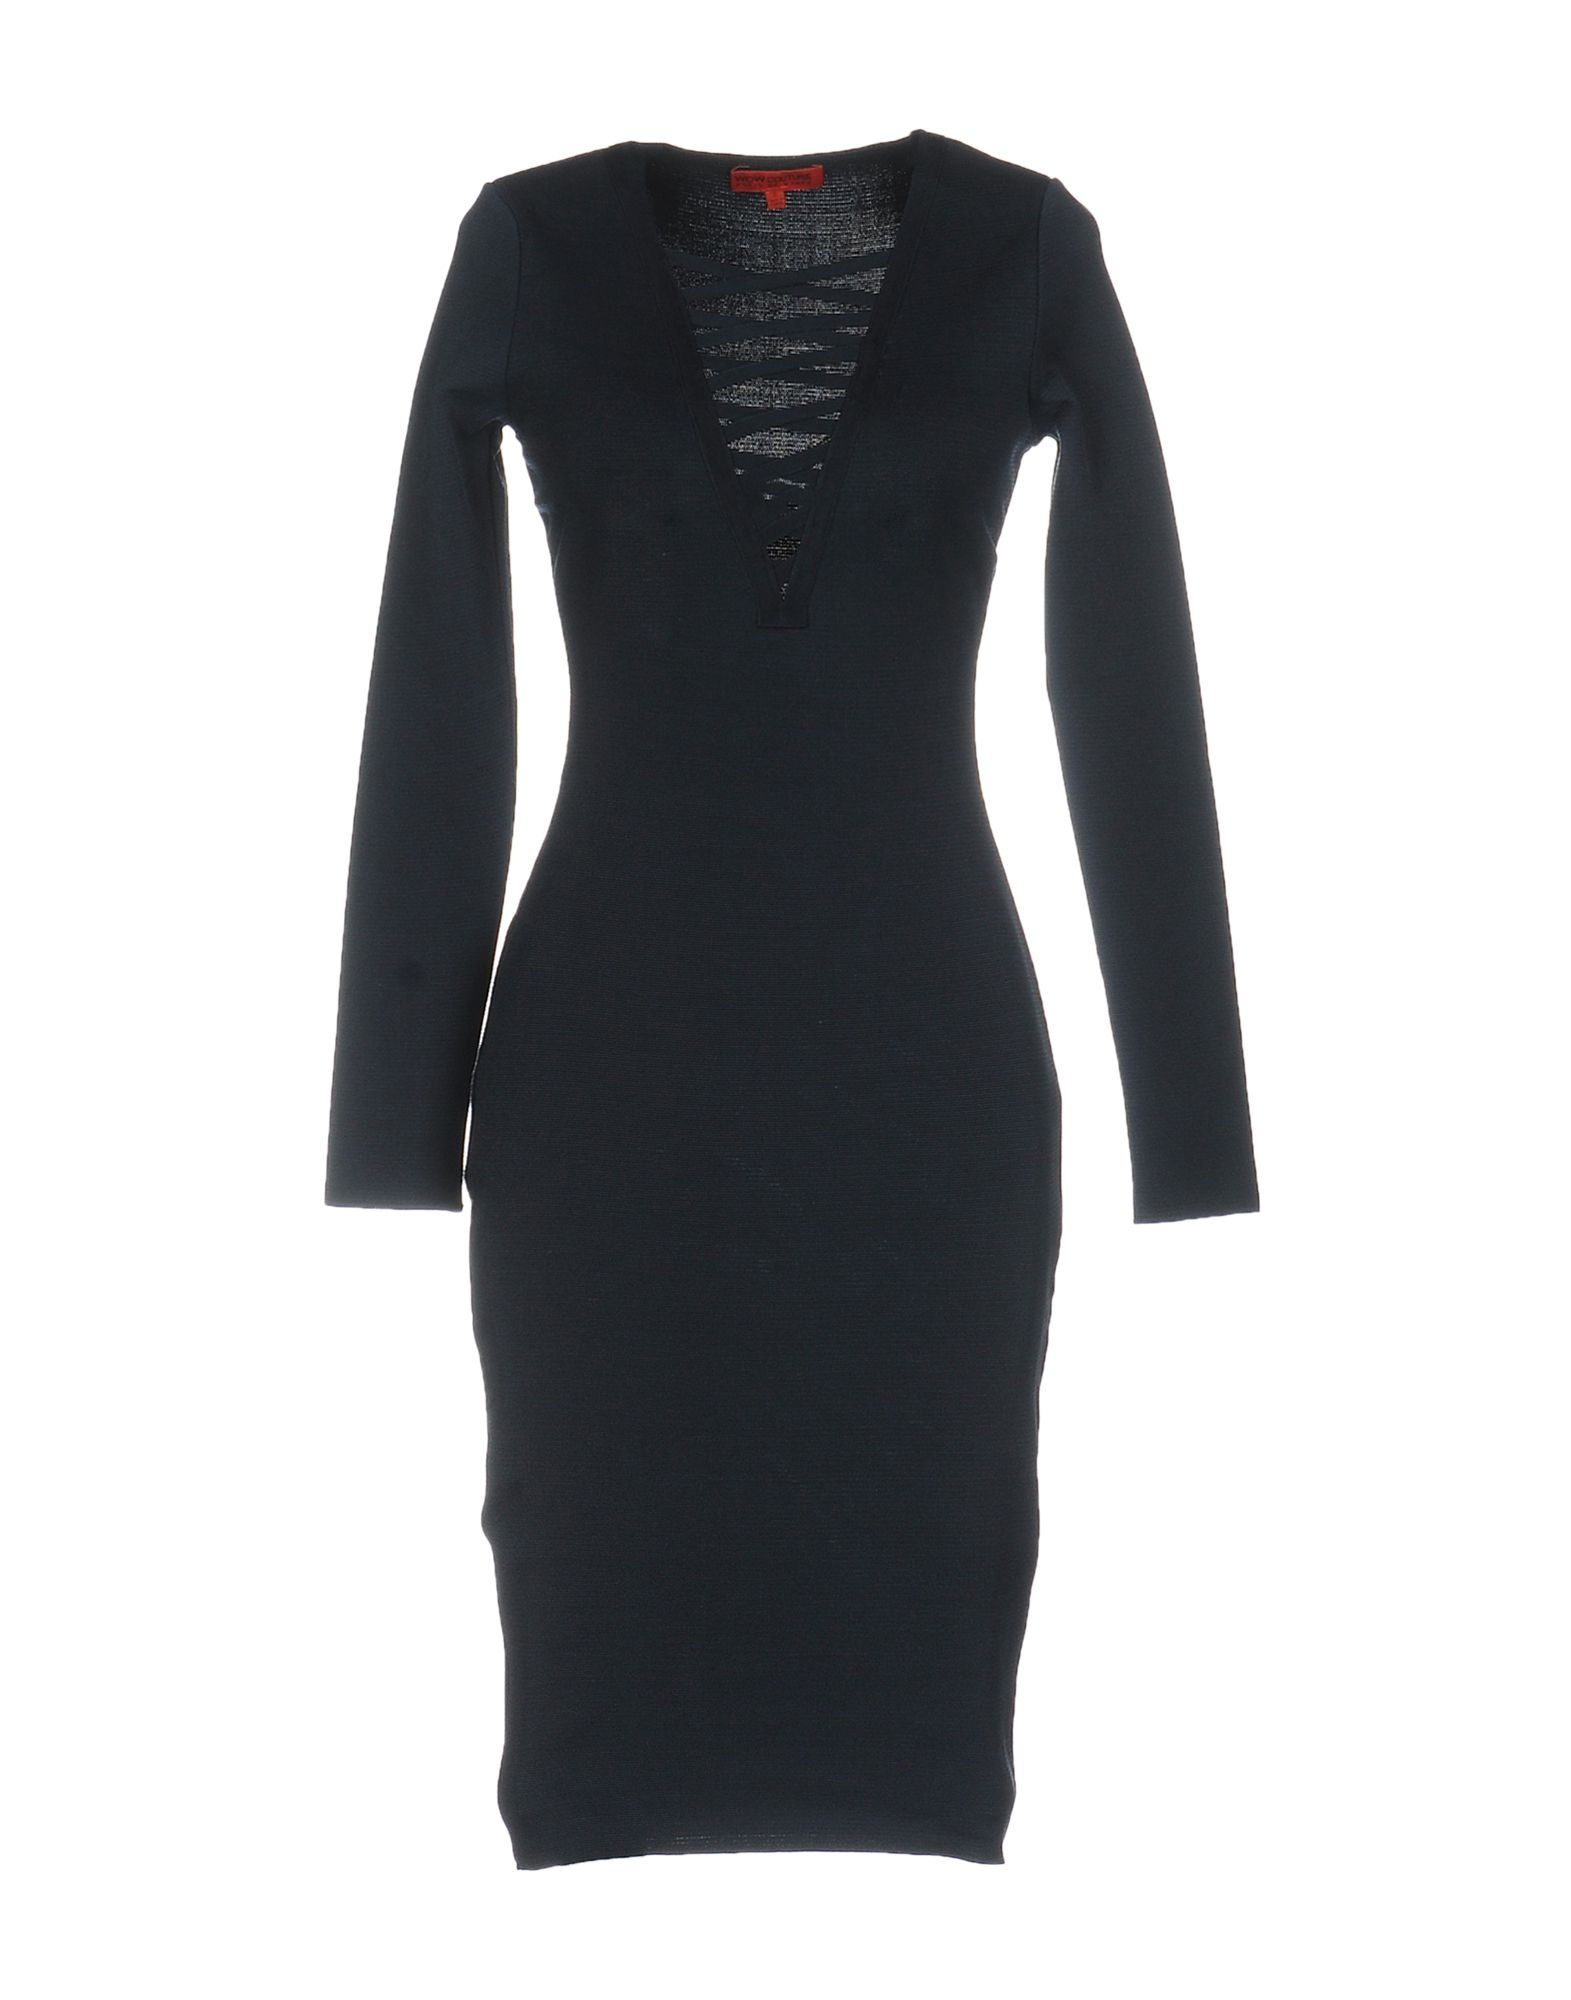 WOW COUTURE Knee-Length Dress in Dark Blue